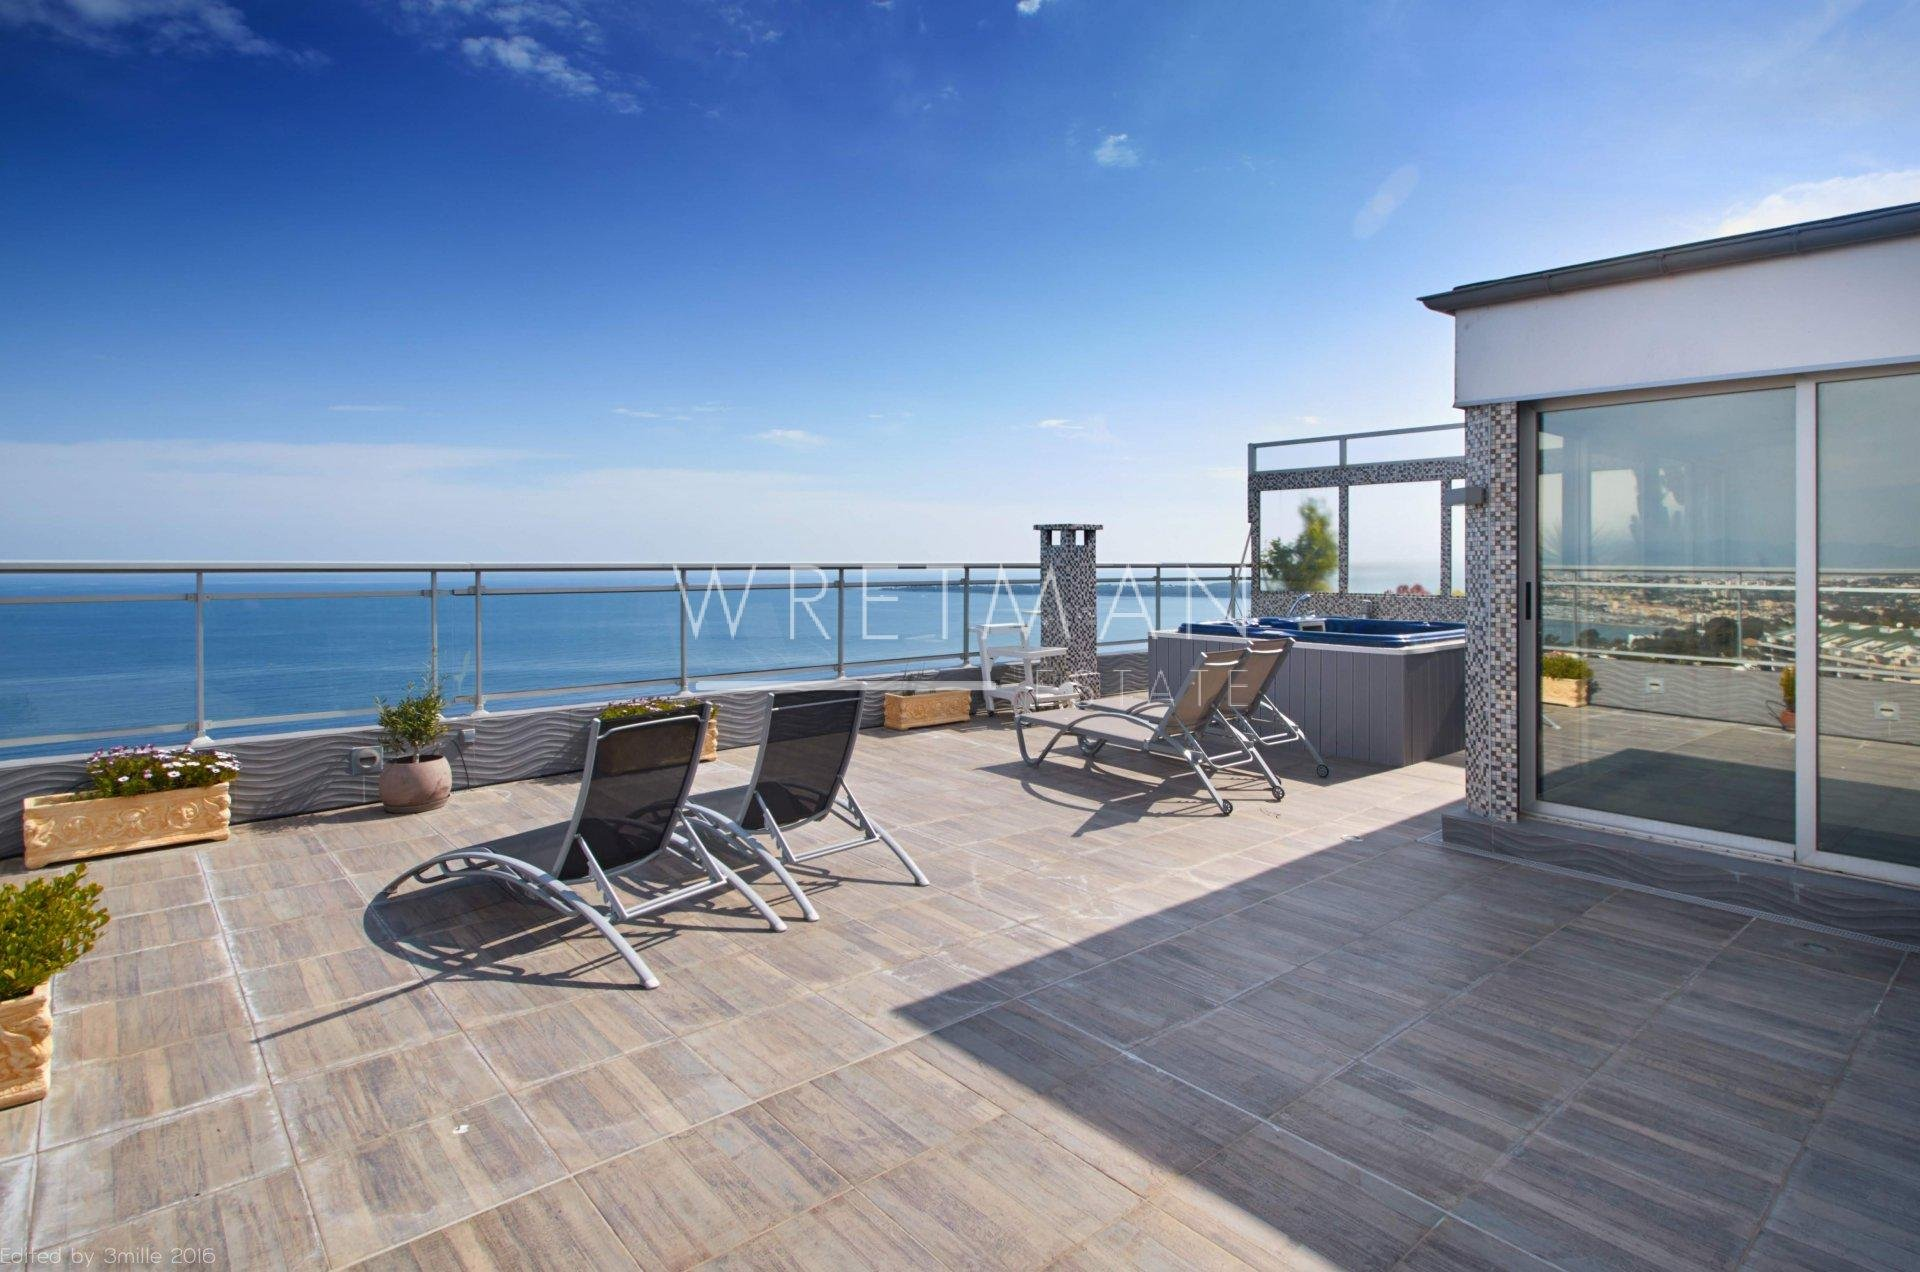 Penthouse with amazing sea view - Cannes californie